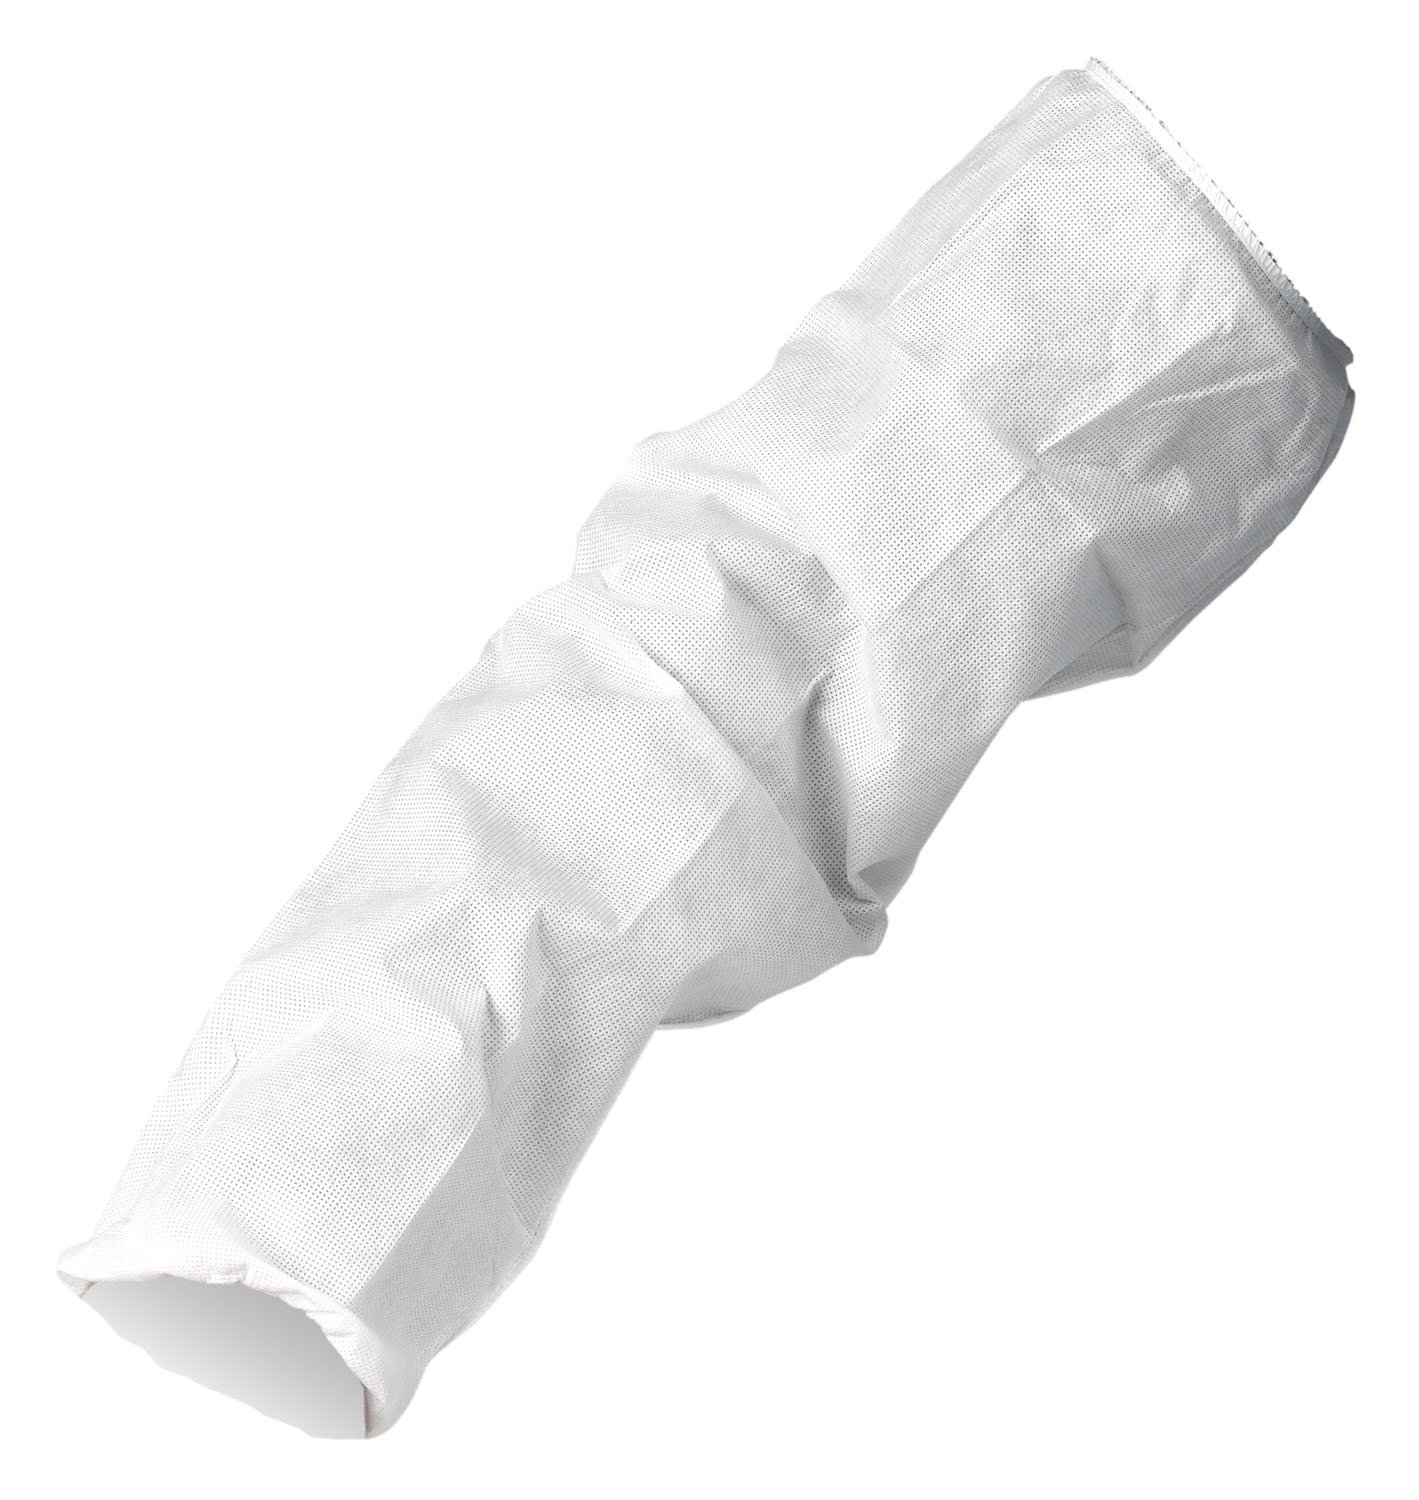 White 18 Length Pack of 200 Kimberly-Clark Professional 23610 Kimberly-Clark KleenGuard A10 Breathable Particle Protection Sleeve Protector Pack of 200 18 Length